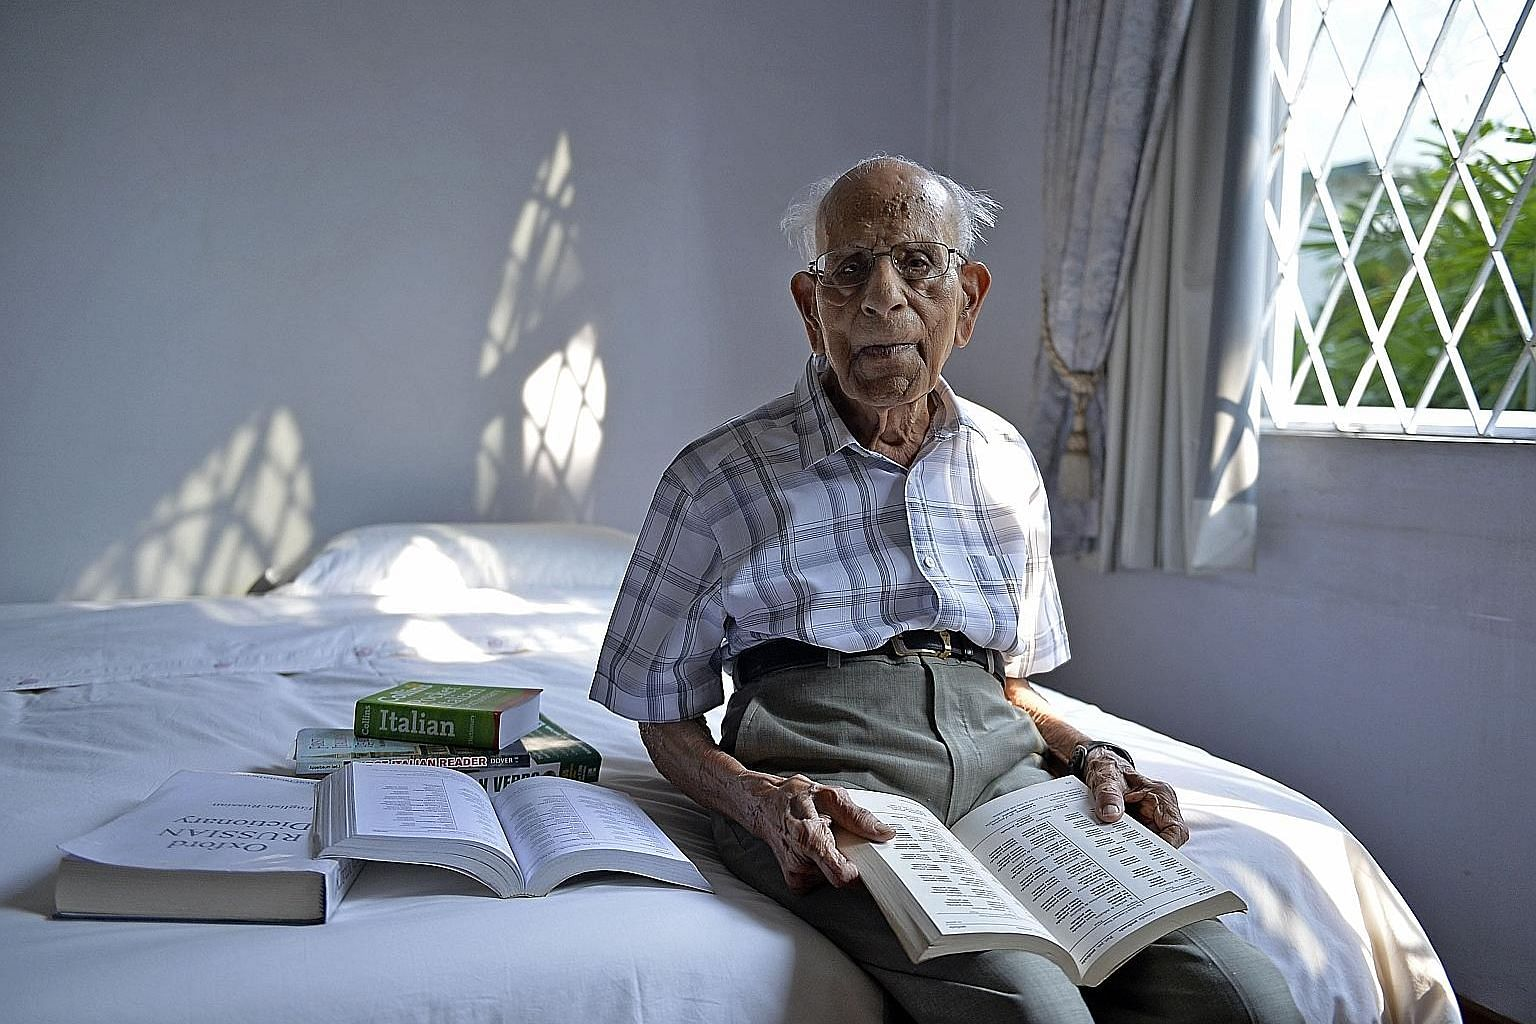 Mr Naganathan Vaithinathan in a photo taken when he was 99 years old. After retiring from the education field, he earned a barrister-at-law certificate in England, and ran his own law firm for 18 years.